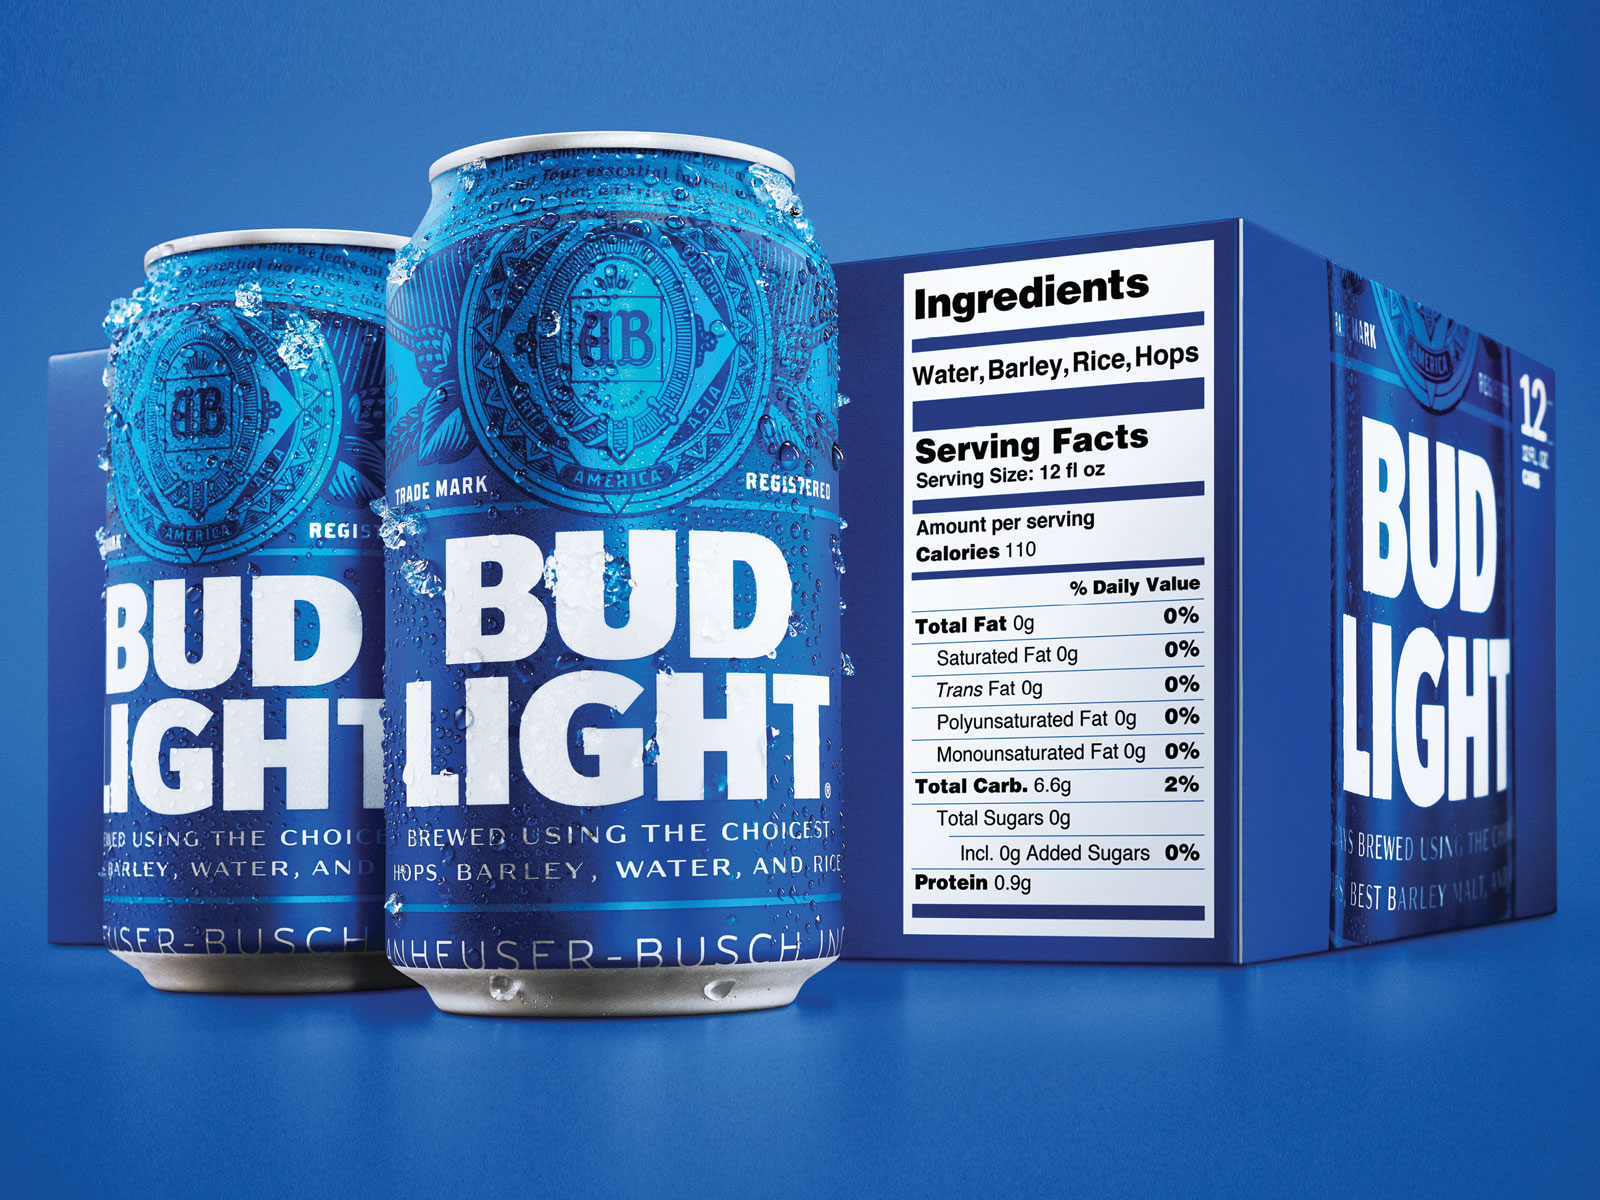 Bud Light Ingredient List